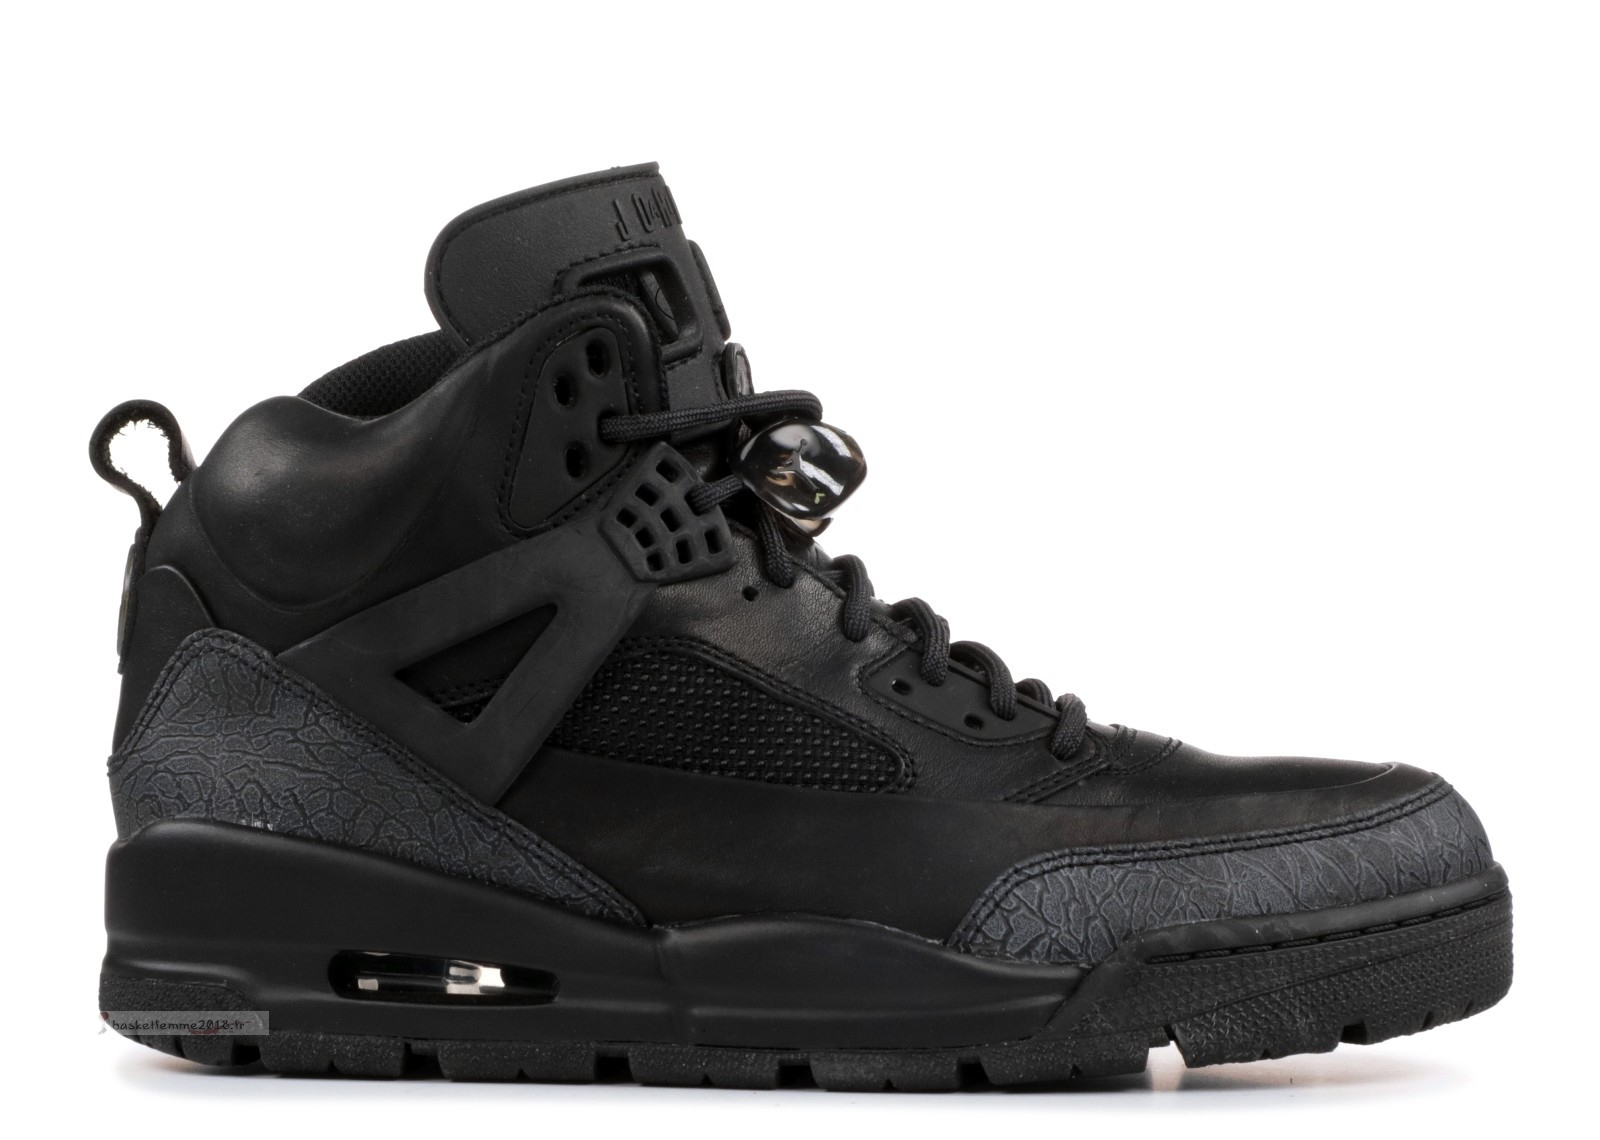 Air Jordan Winterized Spiz'Ike Noir (375356-001) Chaussure de Basket